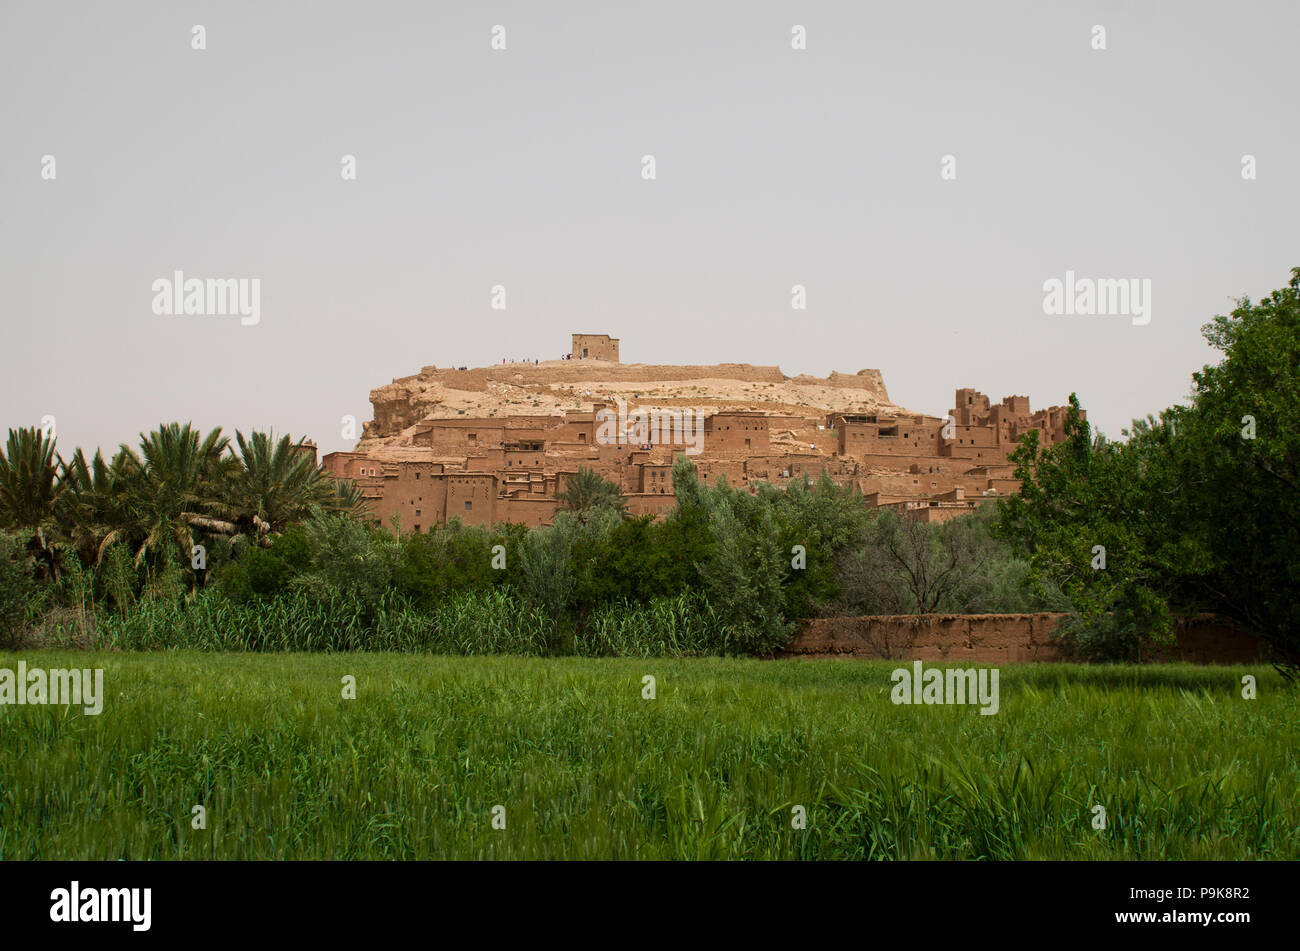 fortress in morocco, africa - Stock Image